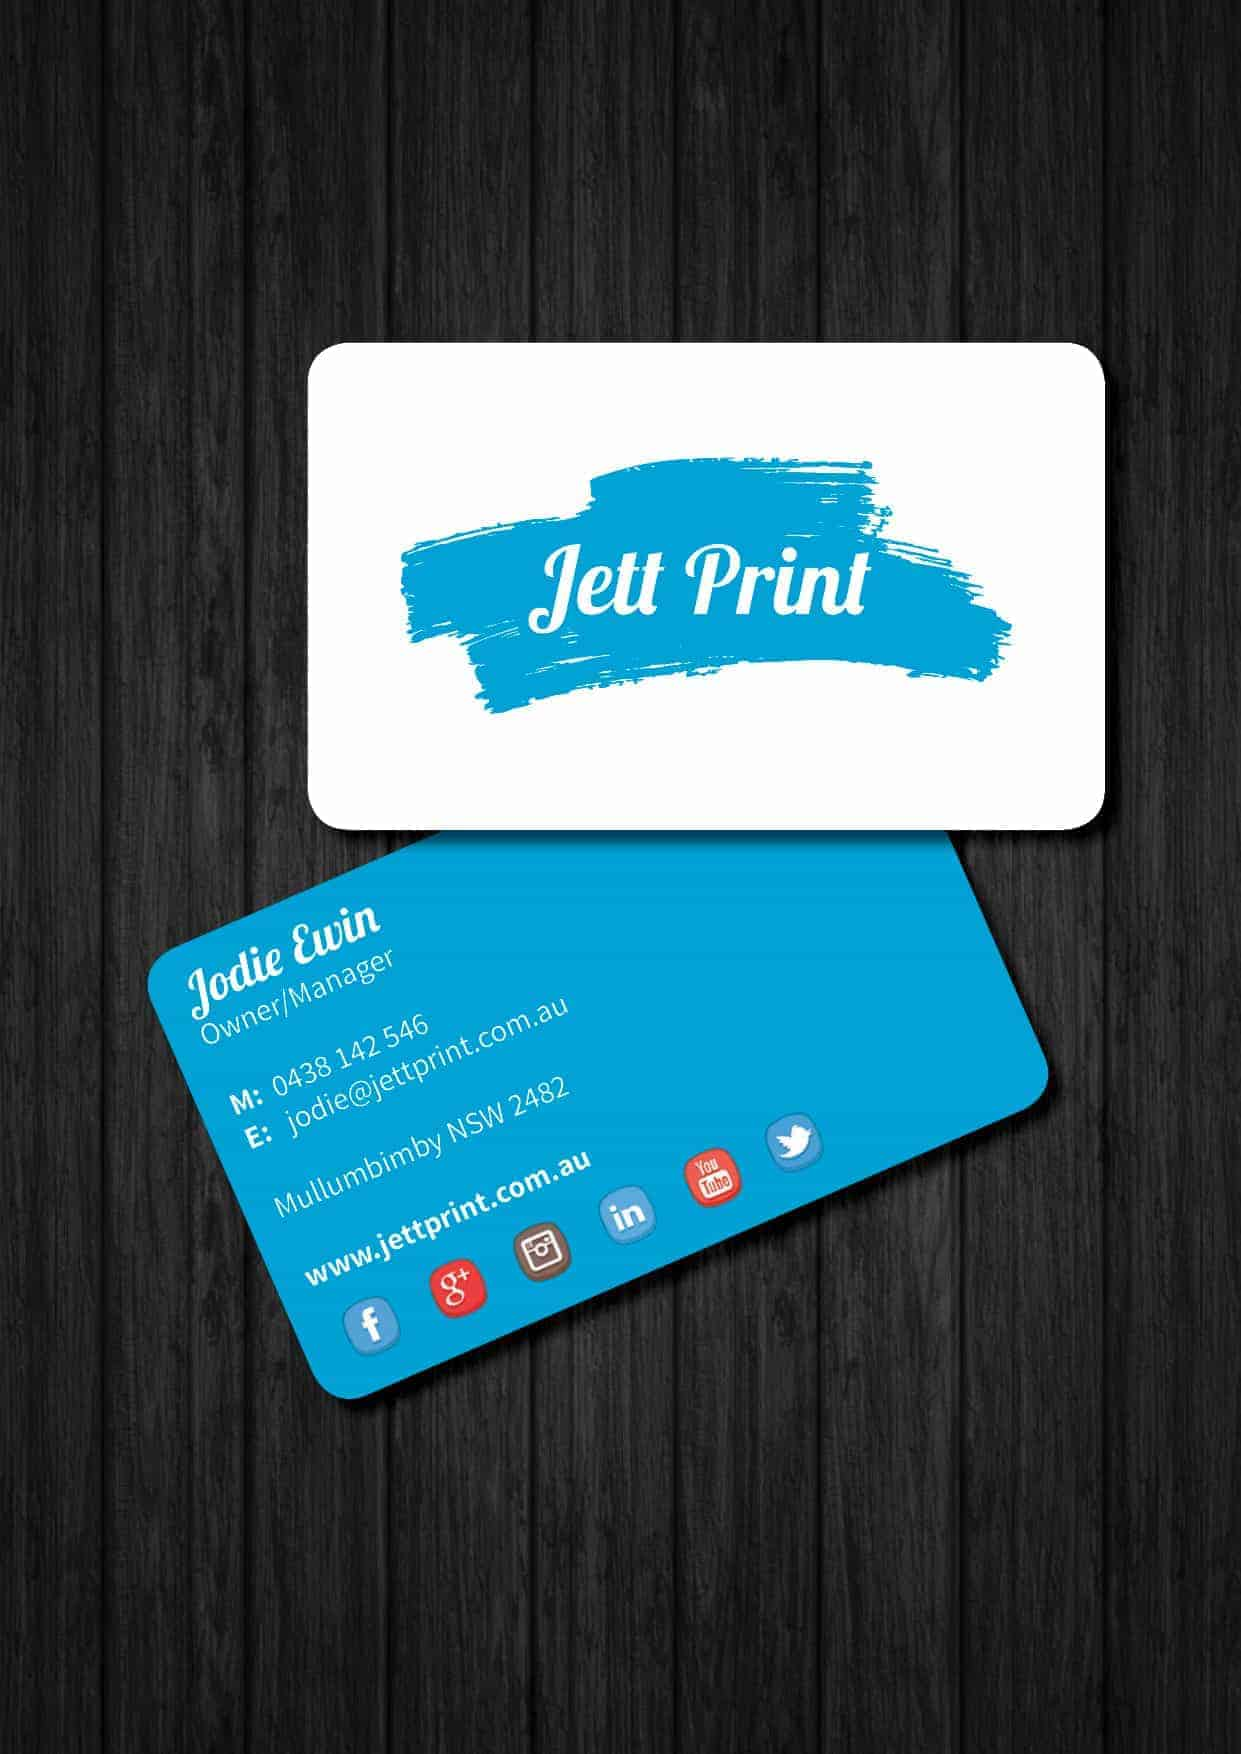 Plastic business cards printing australia gold coast brisbane tweed jett print round cornered business cards reheart Choice Image